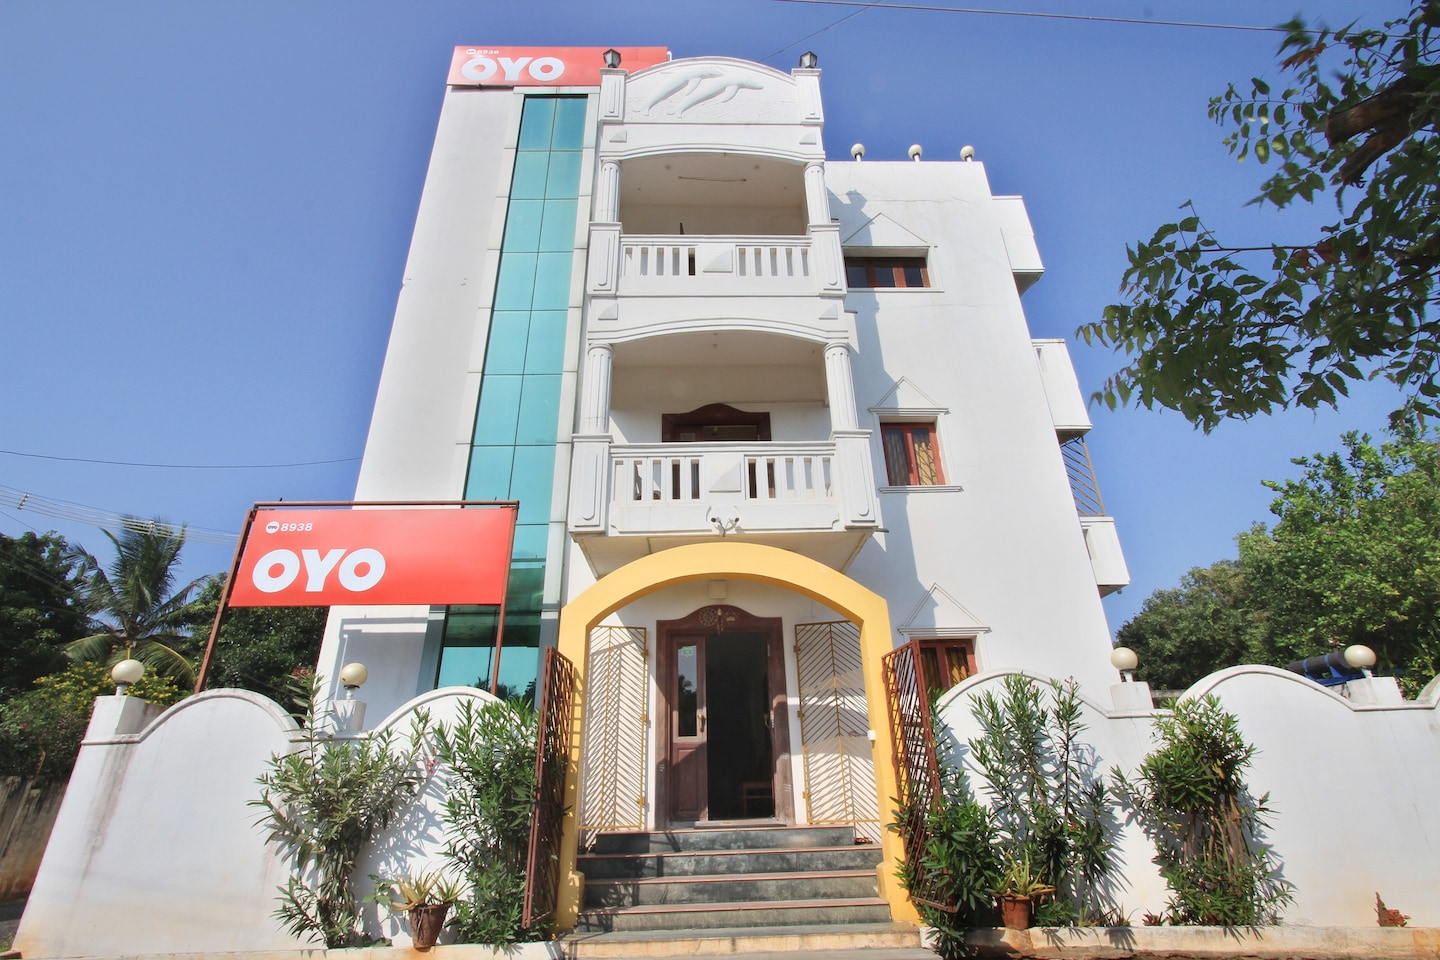 Oyo 8938 near auroville beach pondicherry pondicherry hotel reviews photos offers oyo rooms Budget hotels in pondicherry with swimming pool